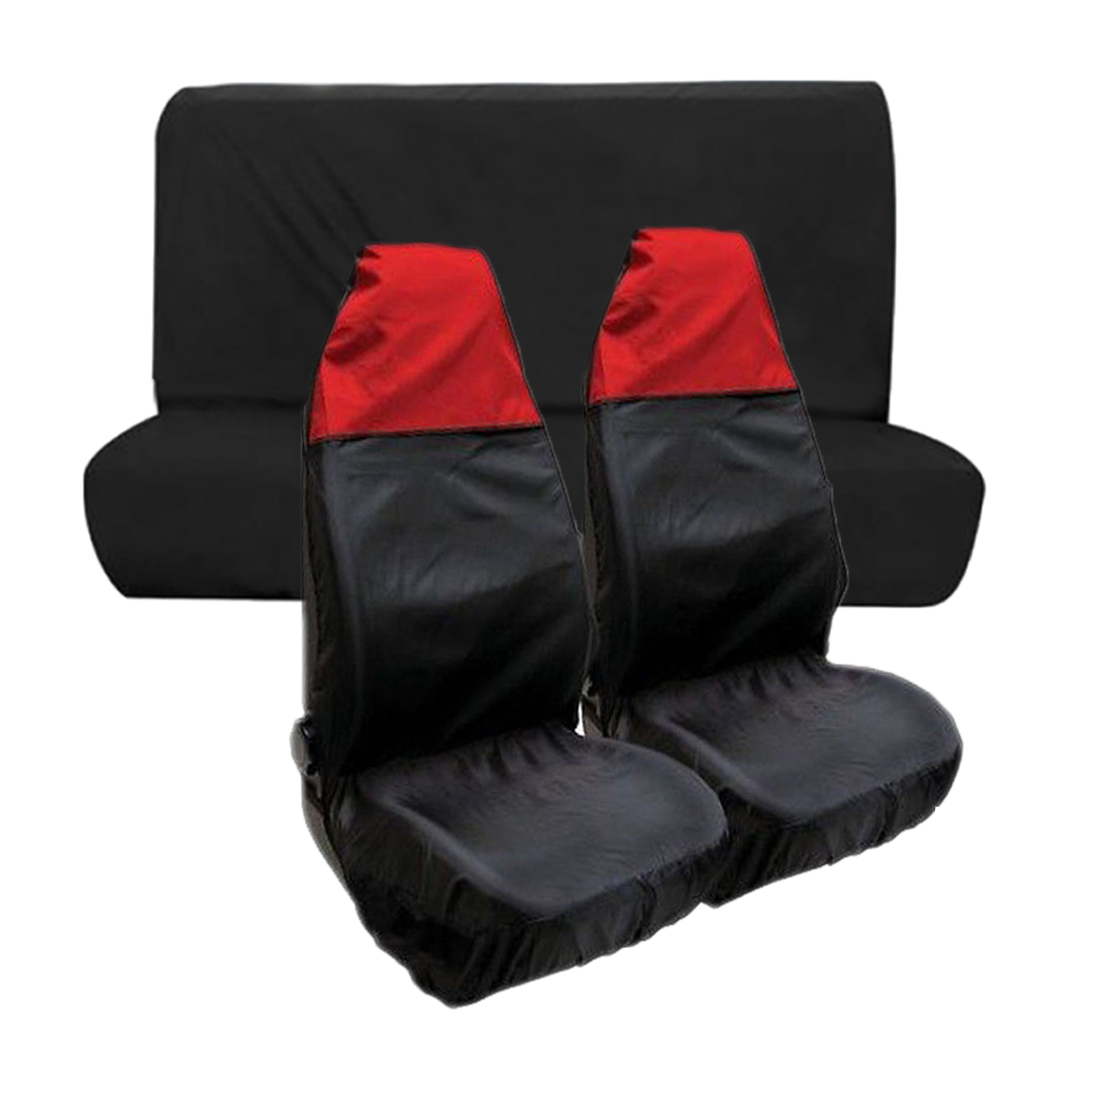 Mechanics seat cover traditional wash basins